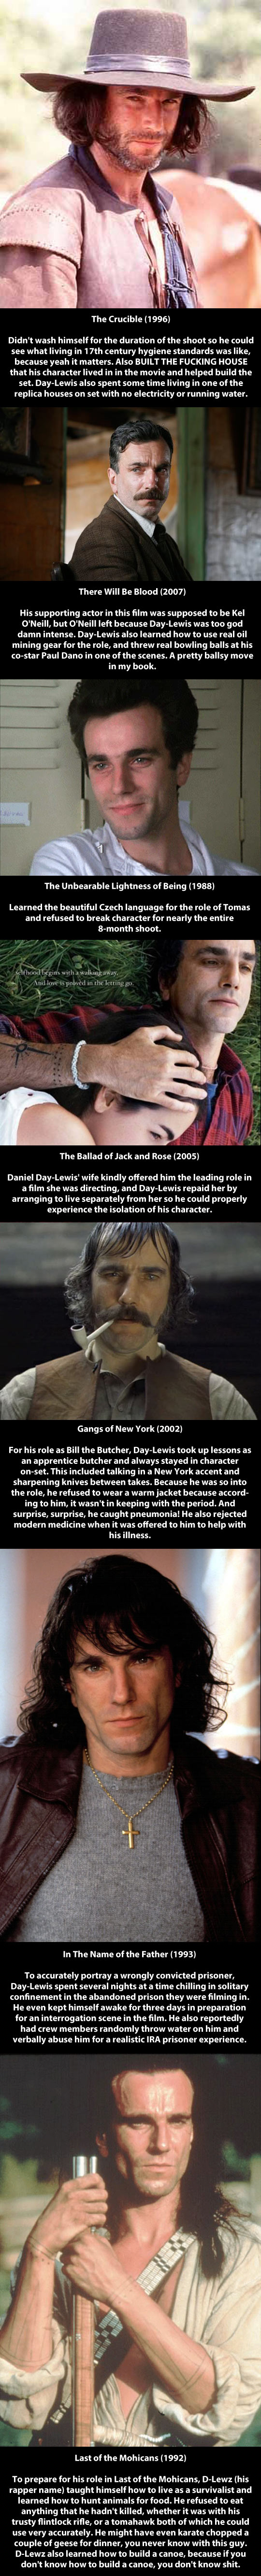 funny-Daniel-Day-Lewis-acting-The-Boxer